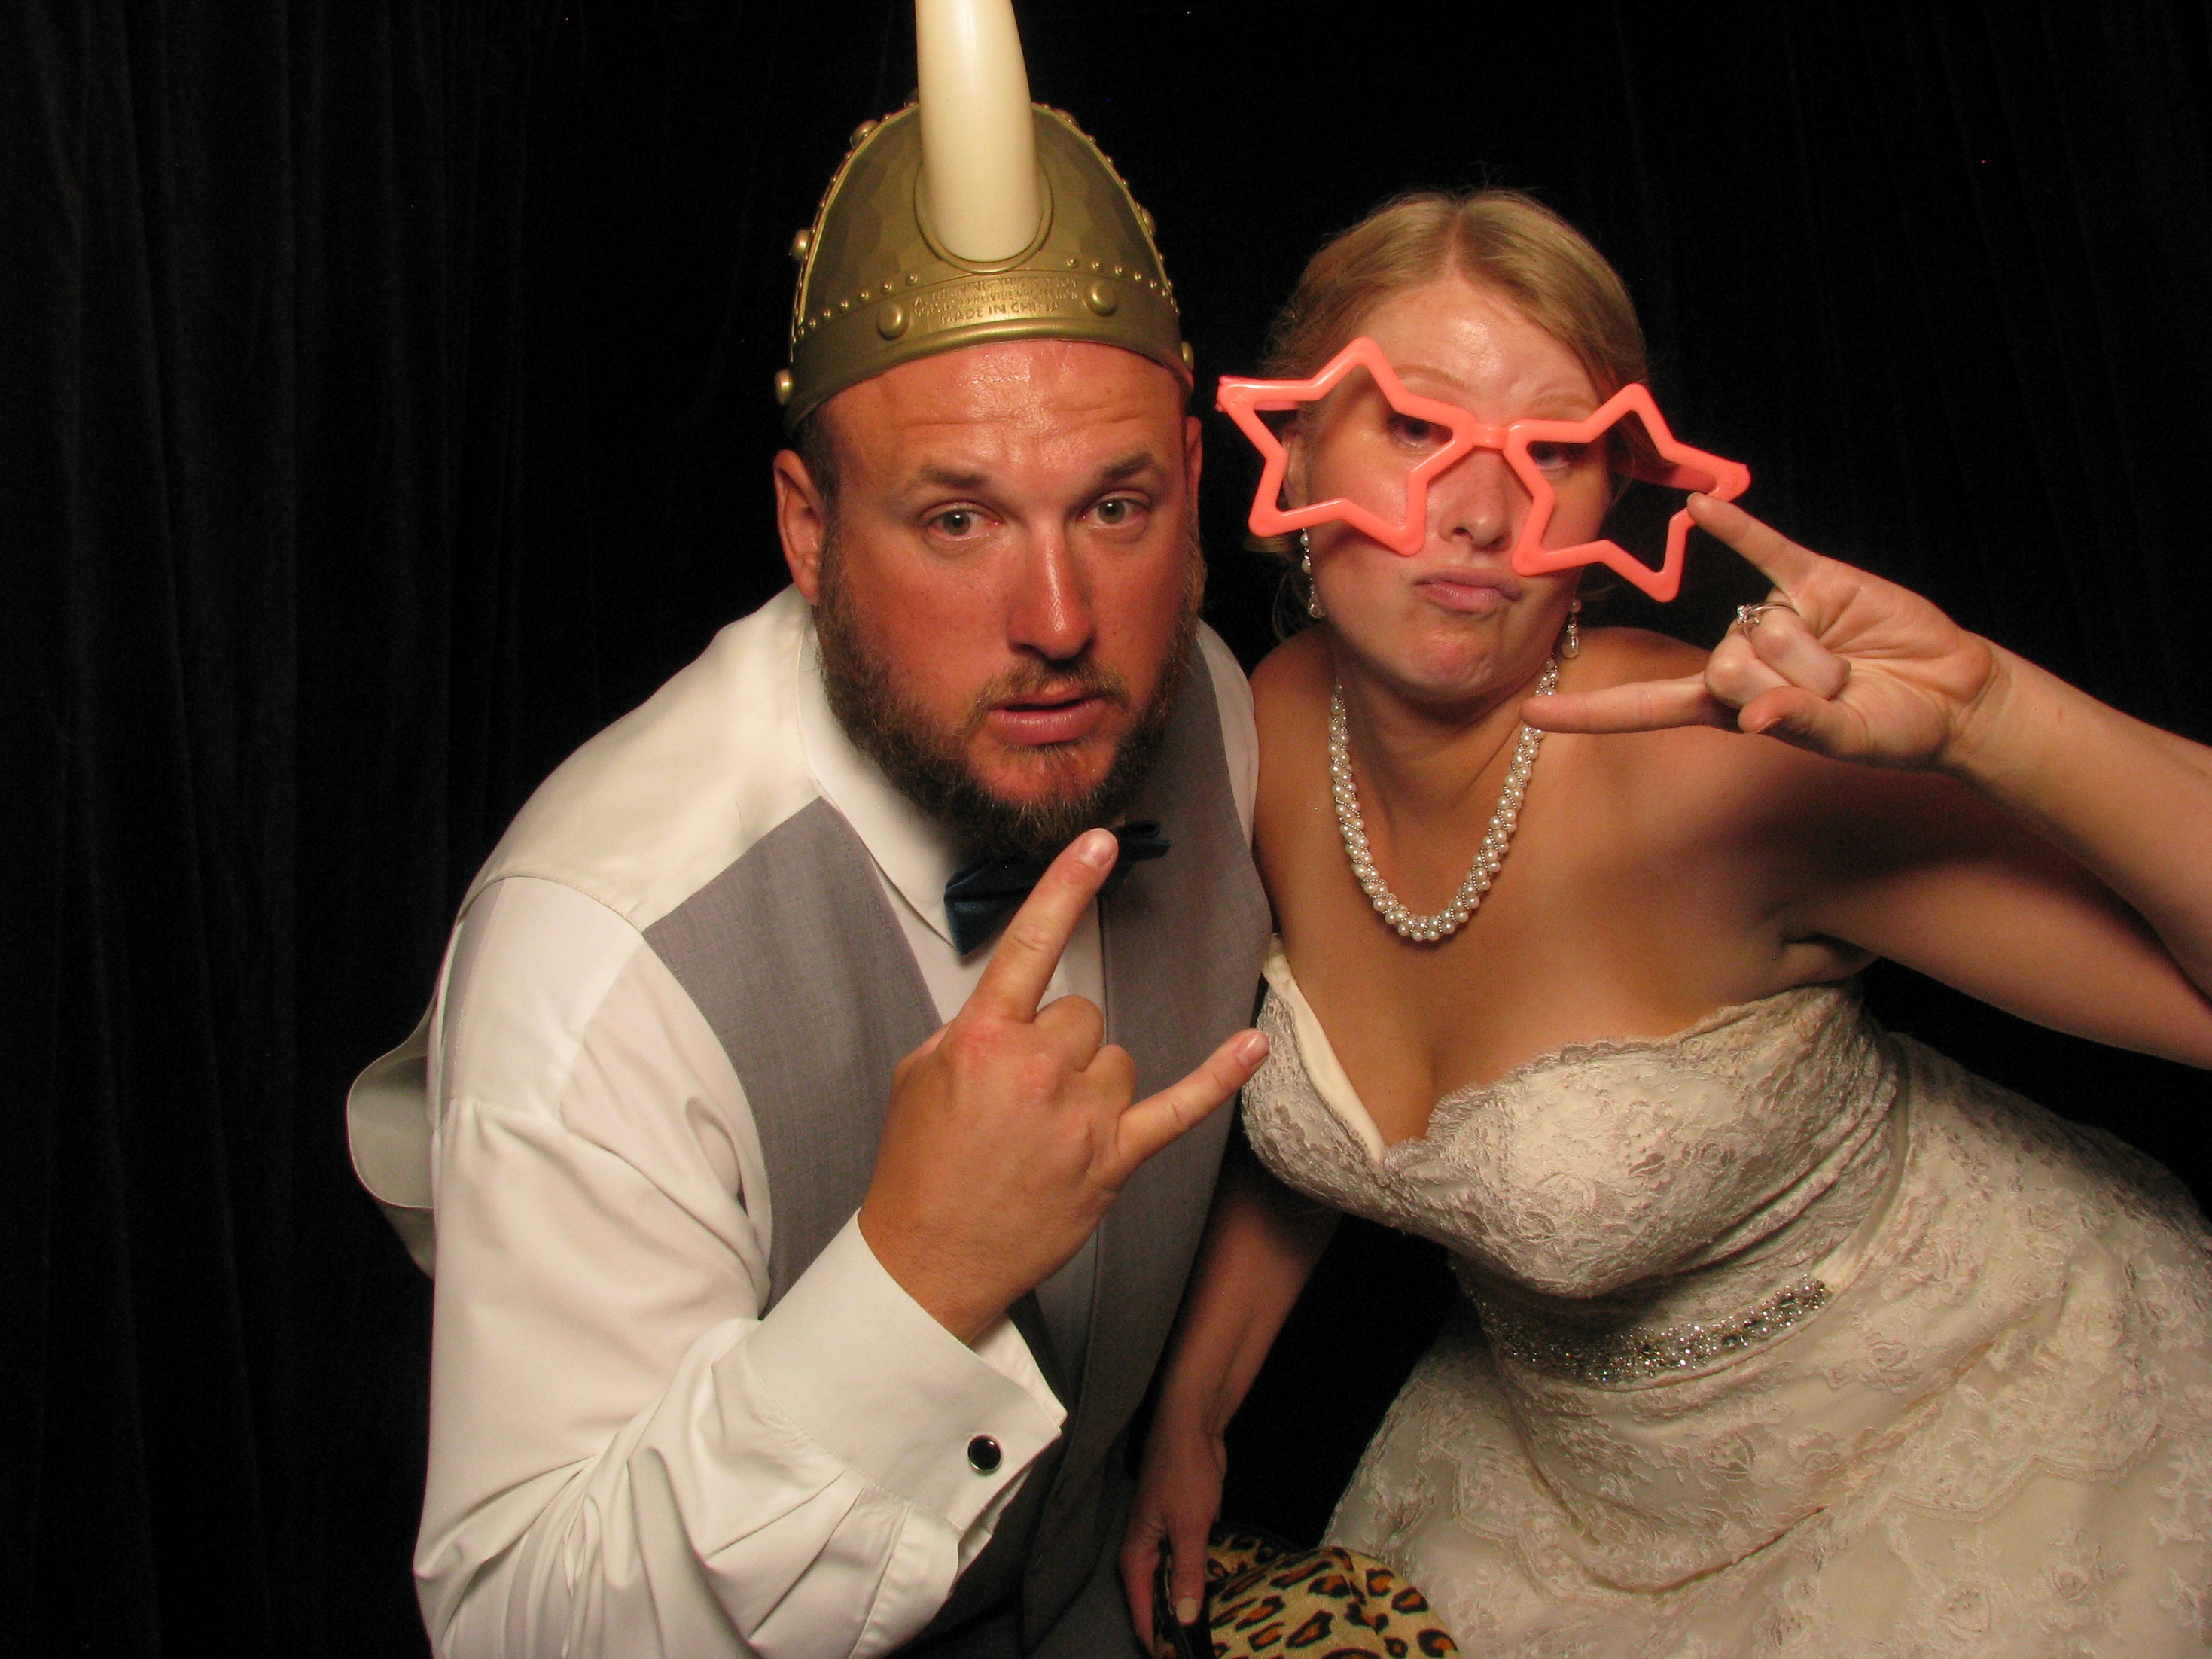 Kathy and ryan at fox hills shutterbooth photo booths